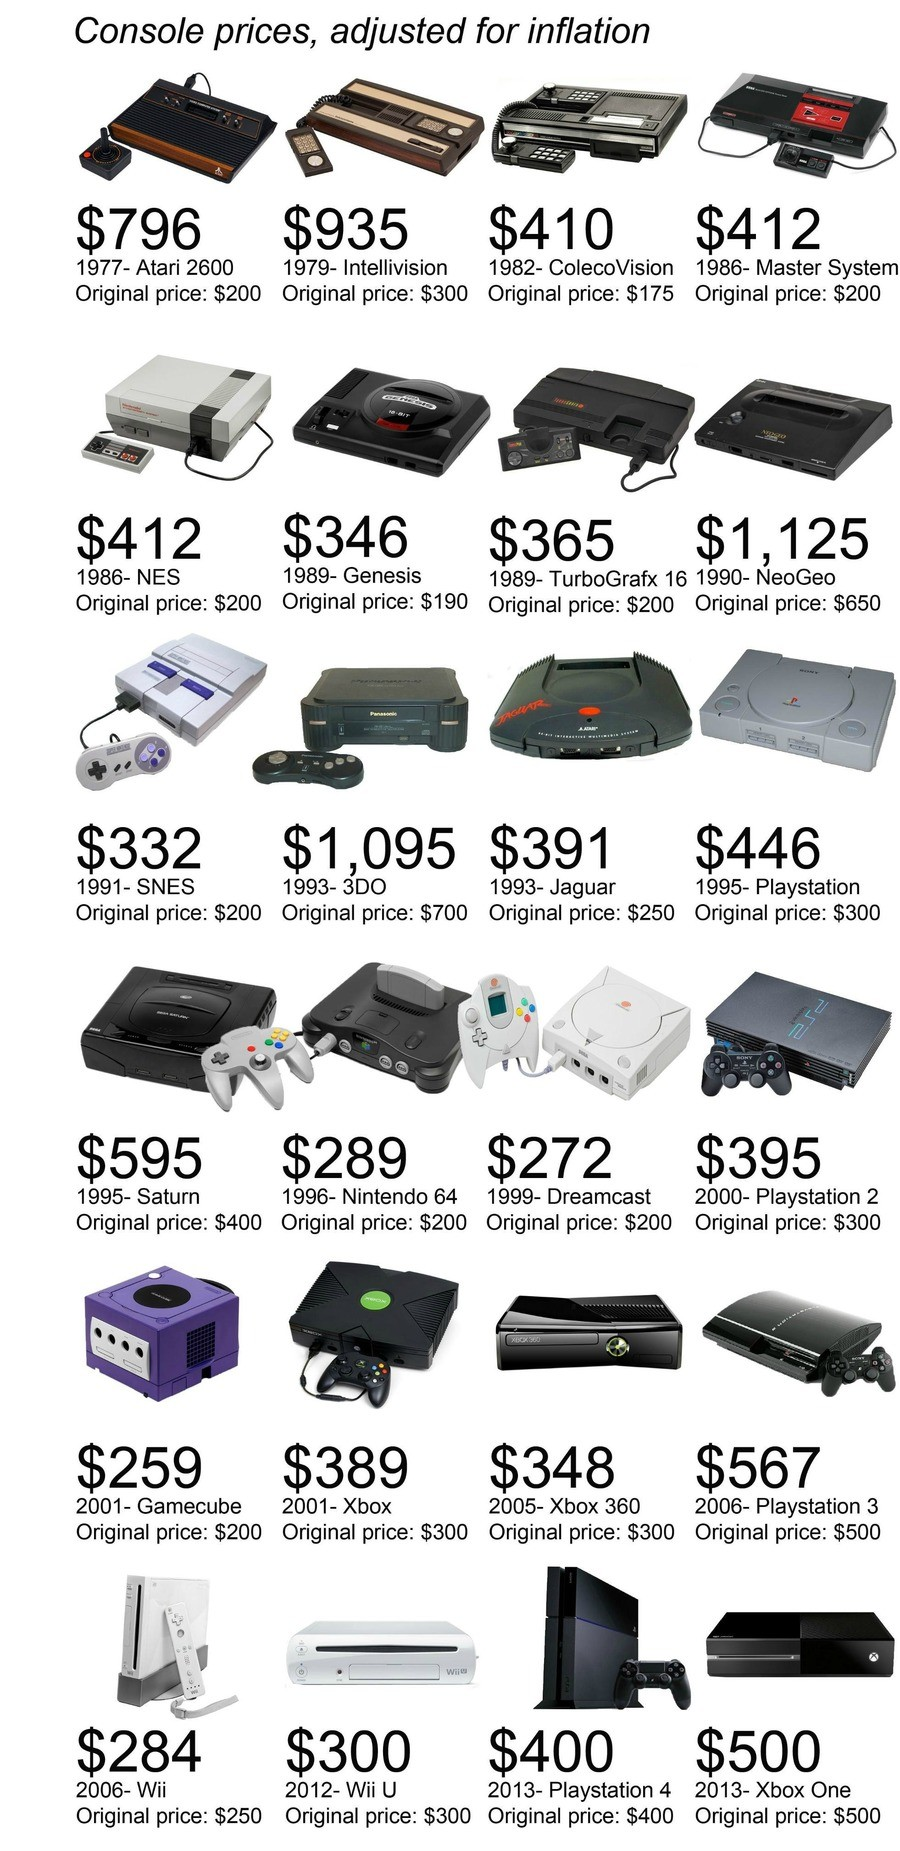 Console Prices. .. The fact that 75% have been under 300$ all along with a few extreme outliers speaks loud and clear as to their prices being straight up arbitrary thievery. You'